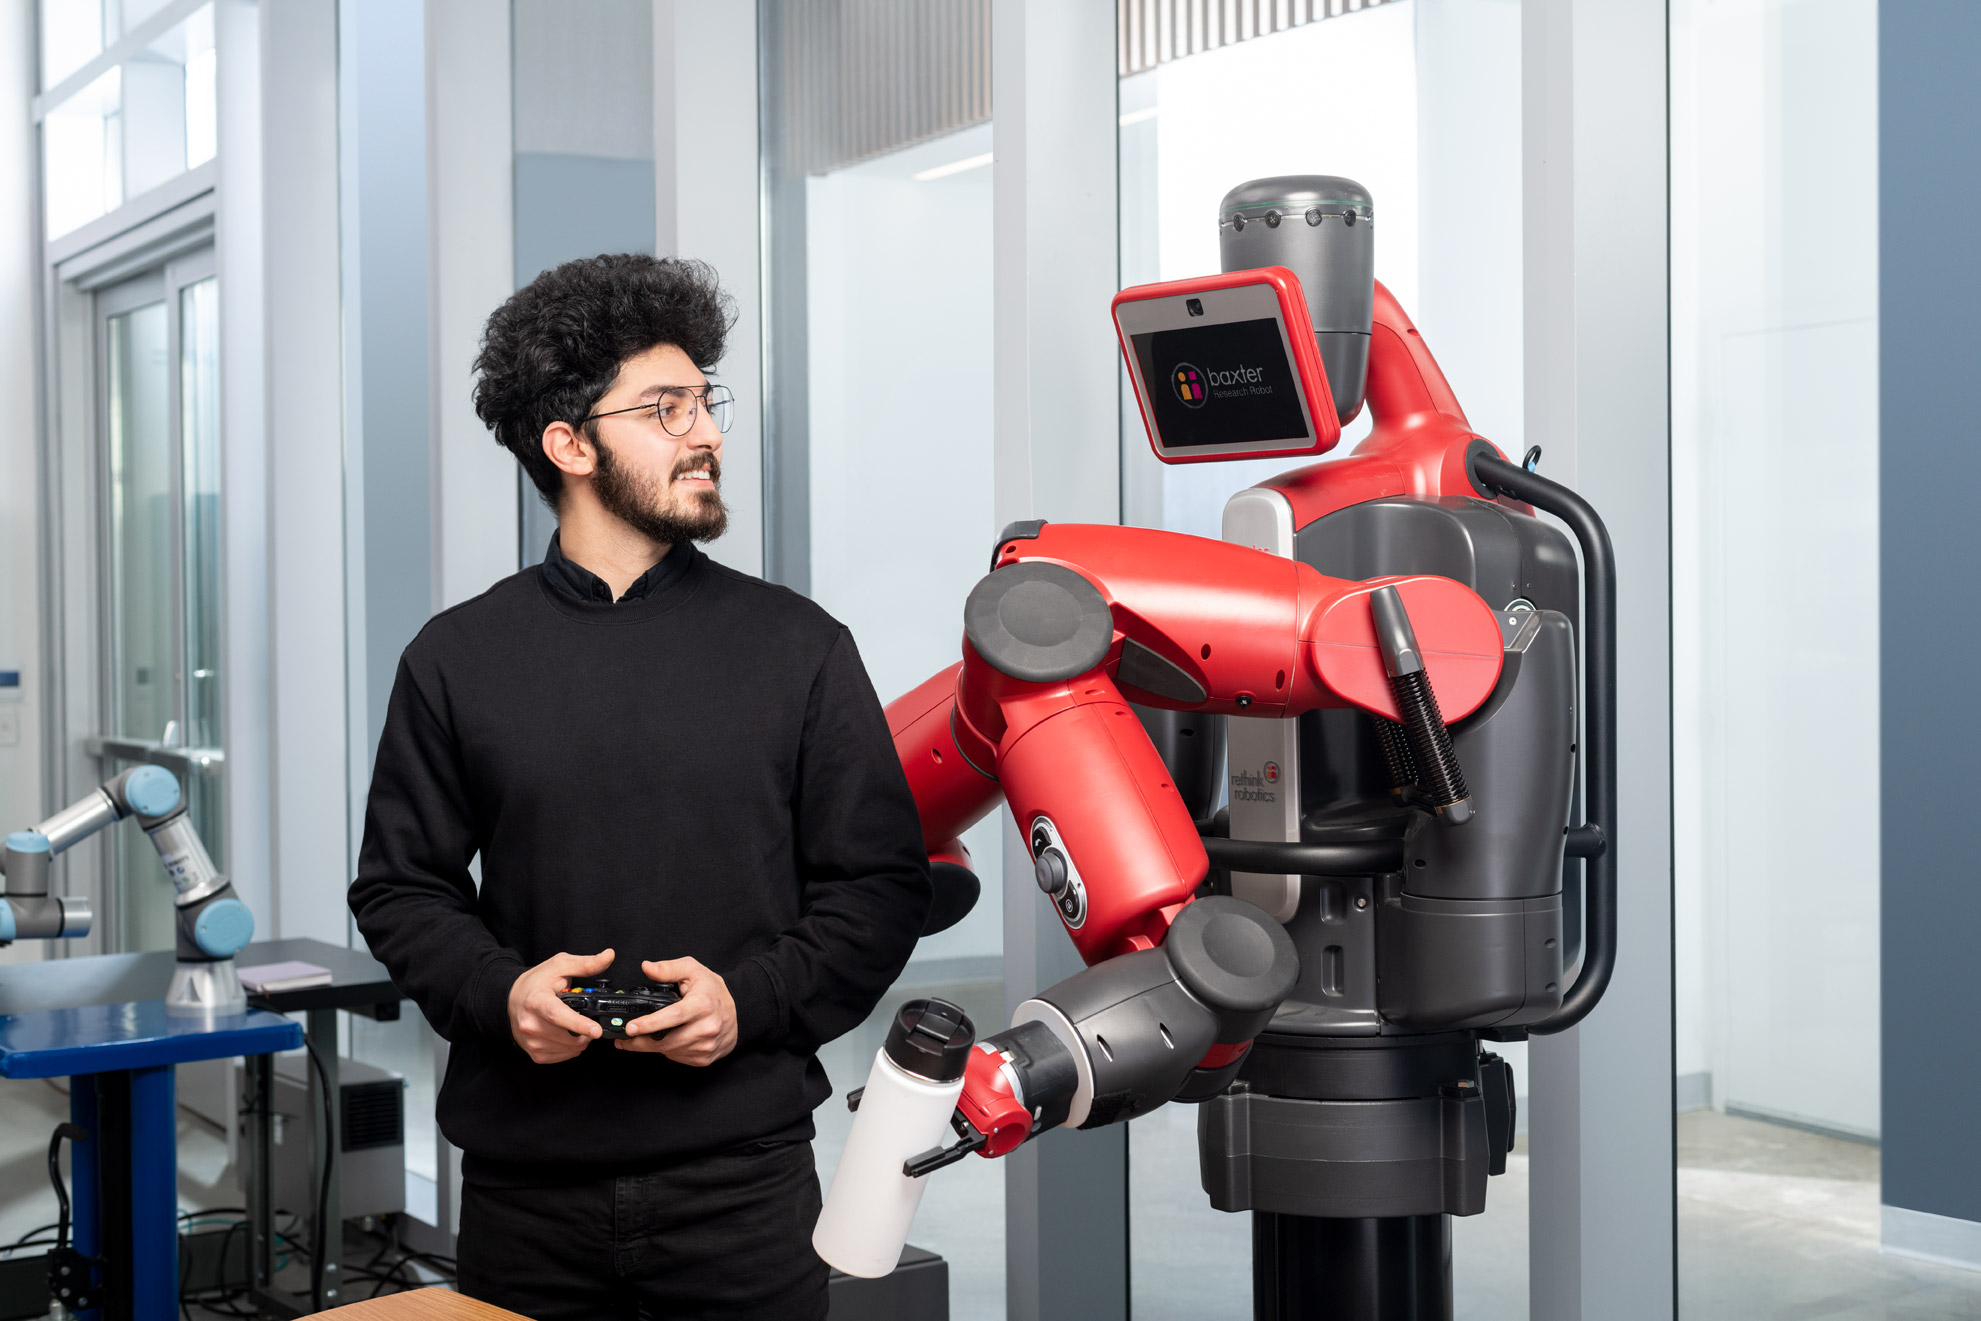 An engineering  student stands with Baxter the robot in a lab